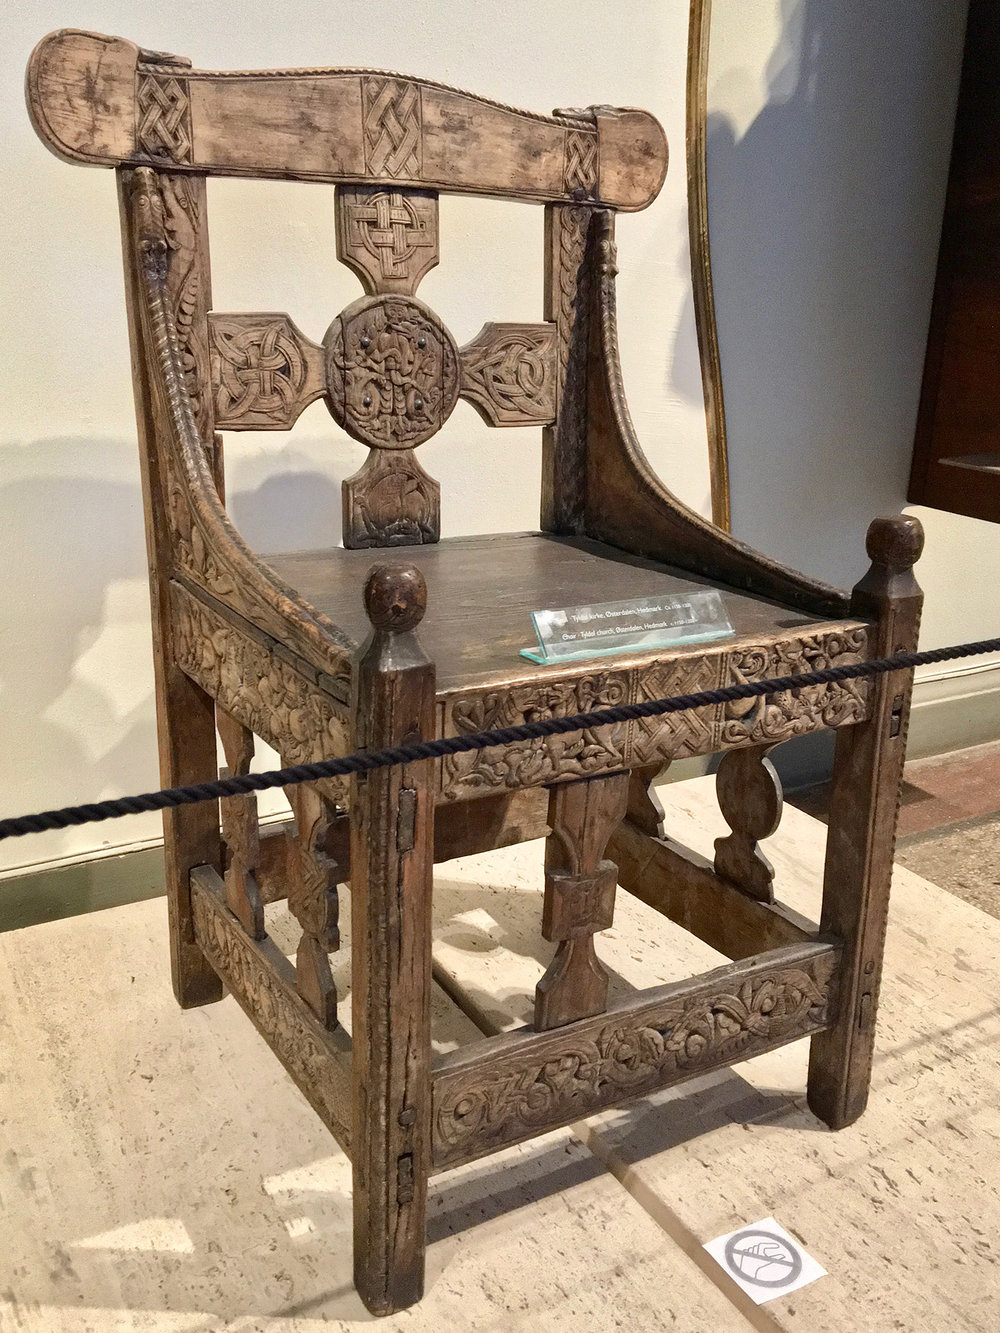 Figure 2: The original twelfth-century Tyldal chair, photographed in the Medieval Exhibition Room (middelalderutstillingen) at Kulturhistorisk Museum, Oslo, Norway. Photo © User: Wolfmann / Wikimedia Commons.